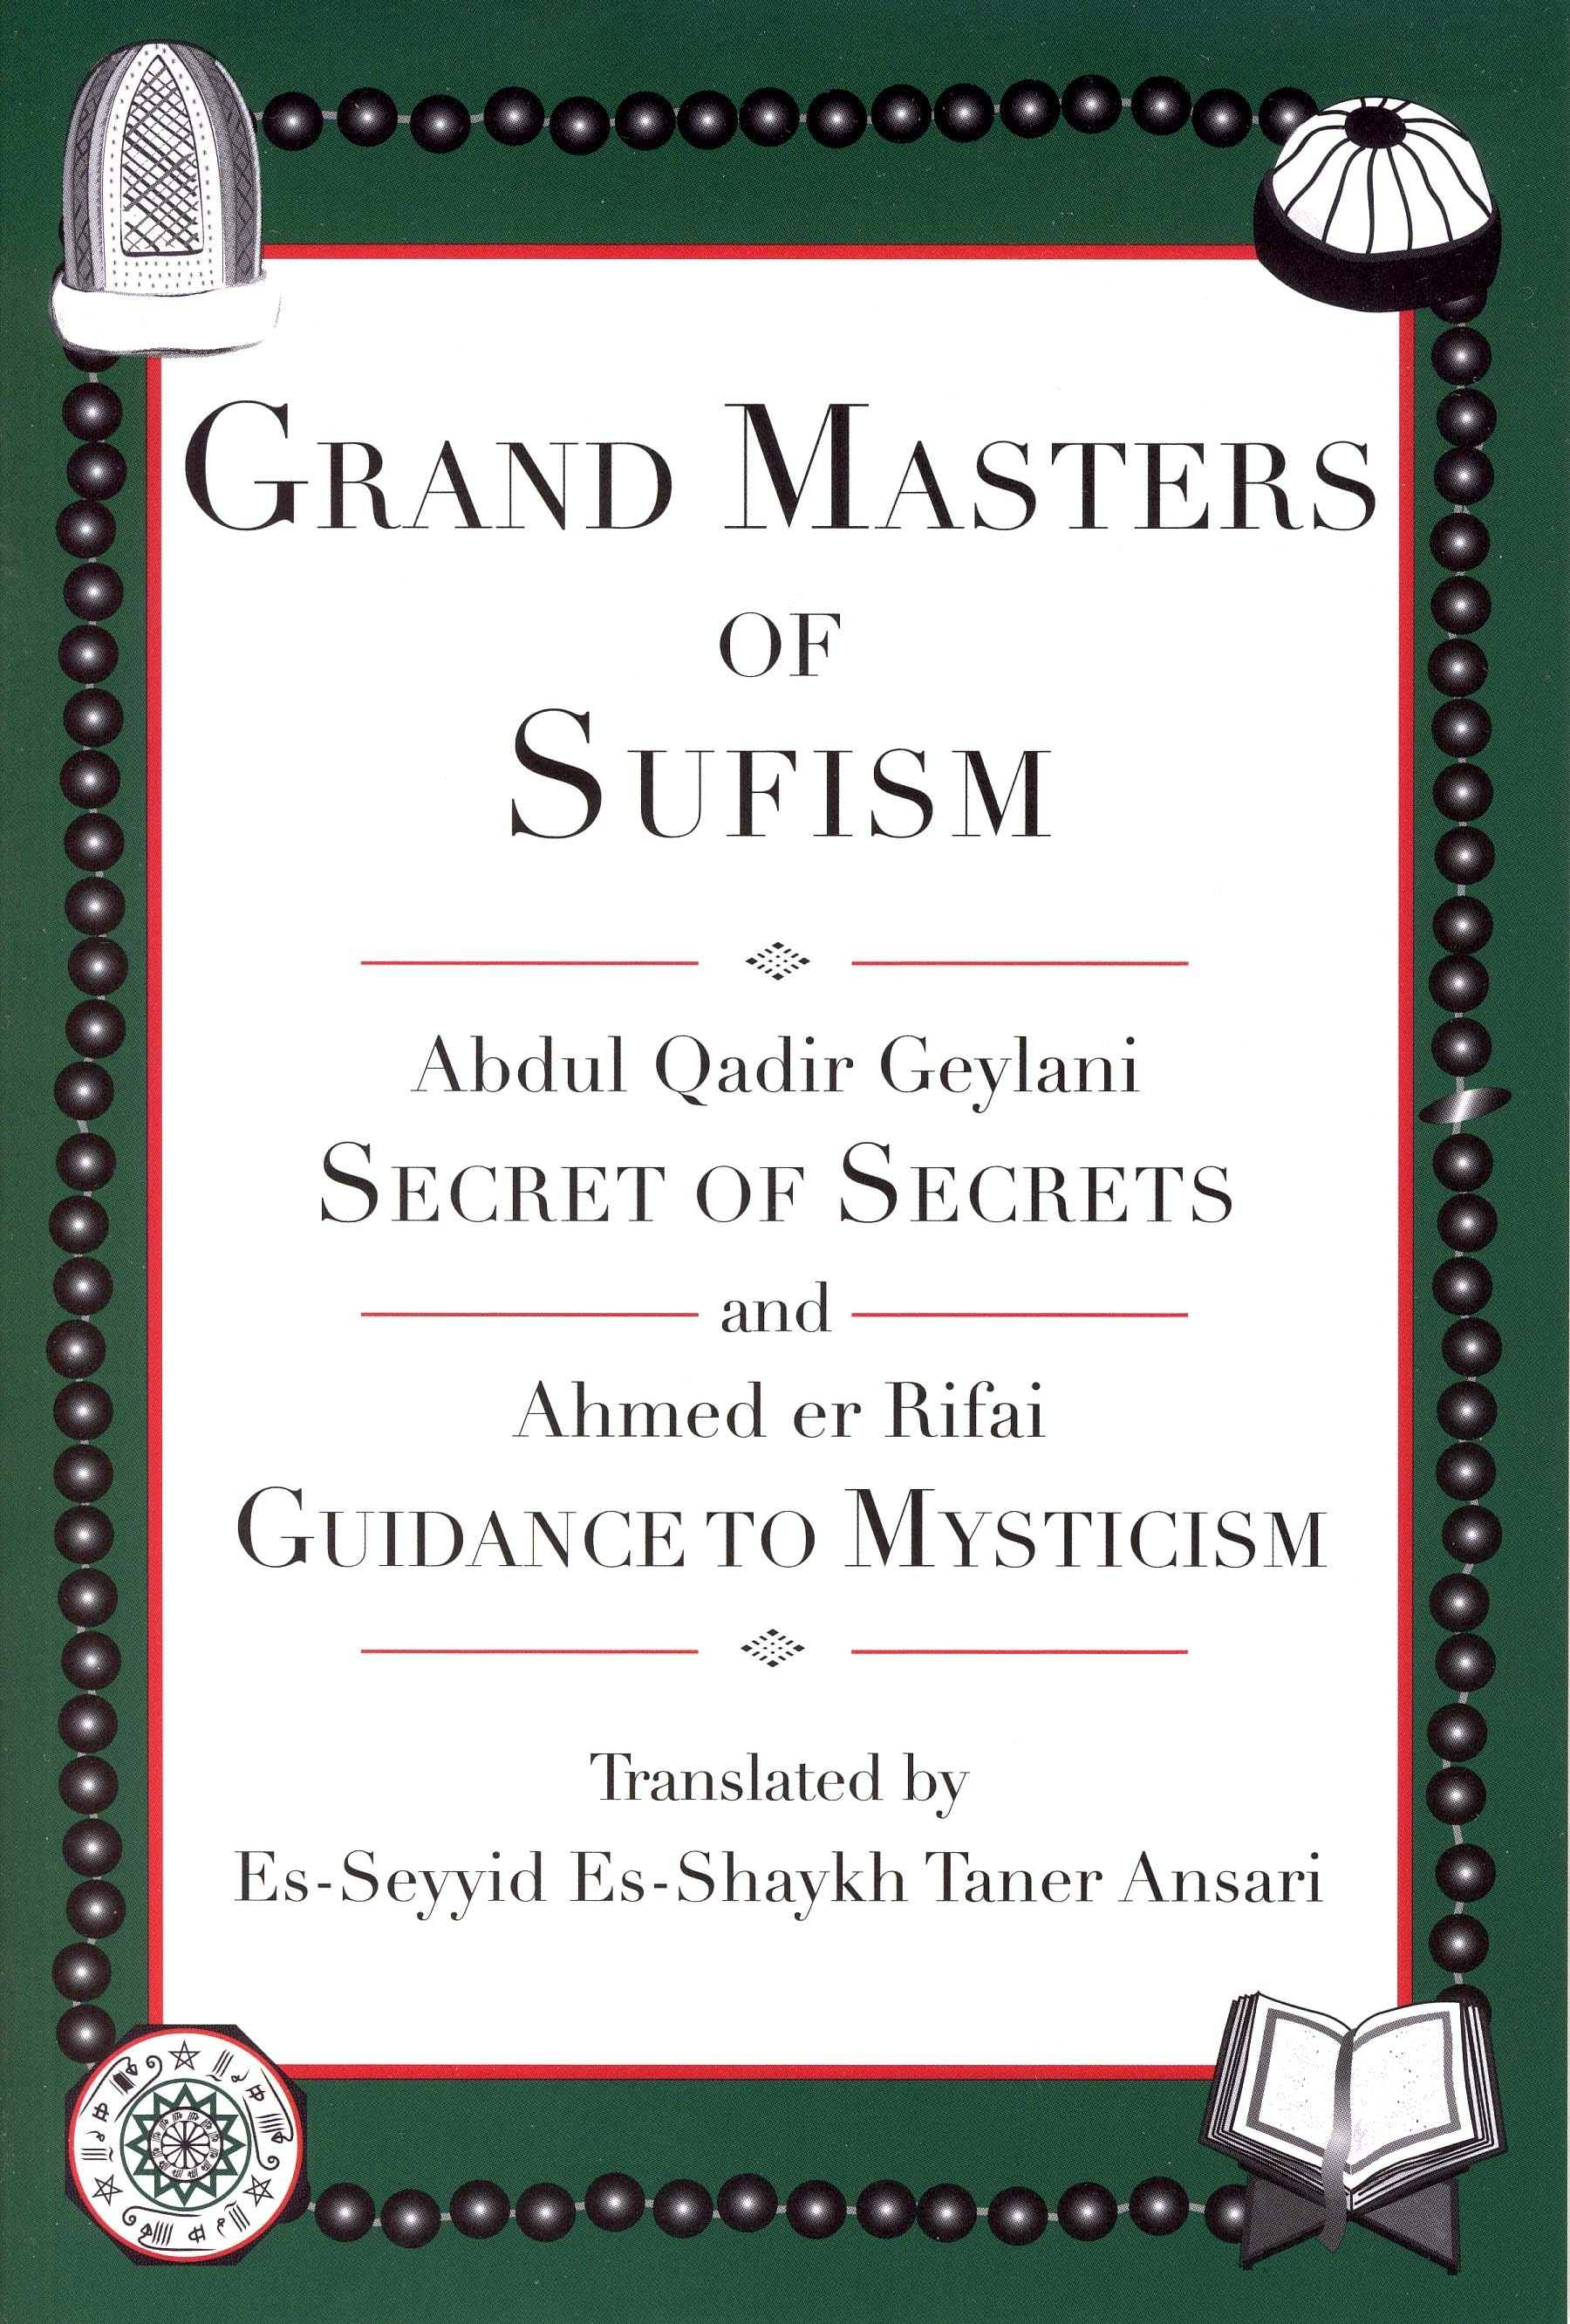 Grand Masters of Sufism, Abdul Qadir Geylani and Ahmed er Rifai (Annotated)